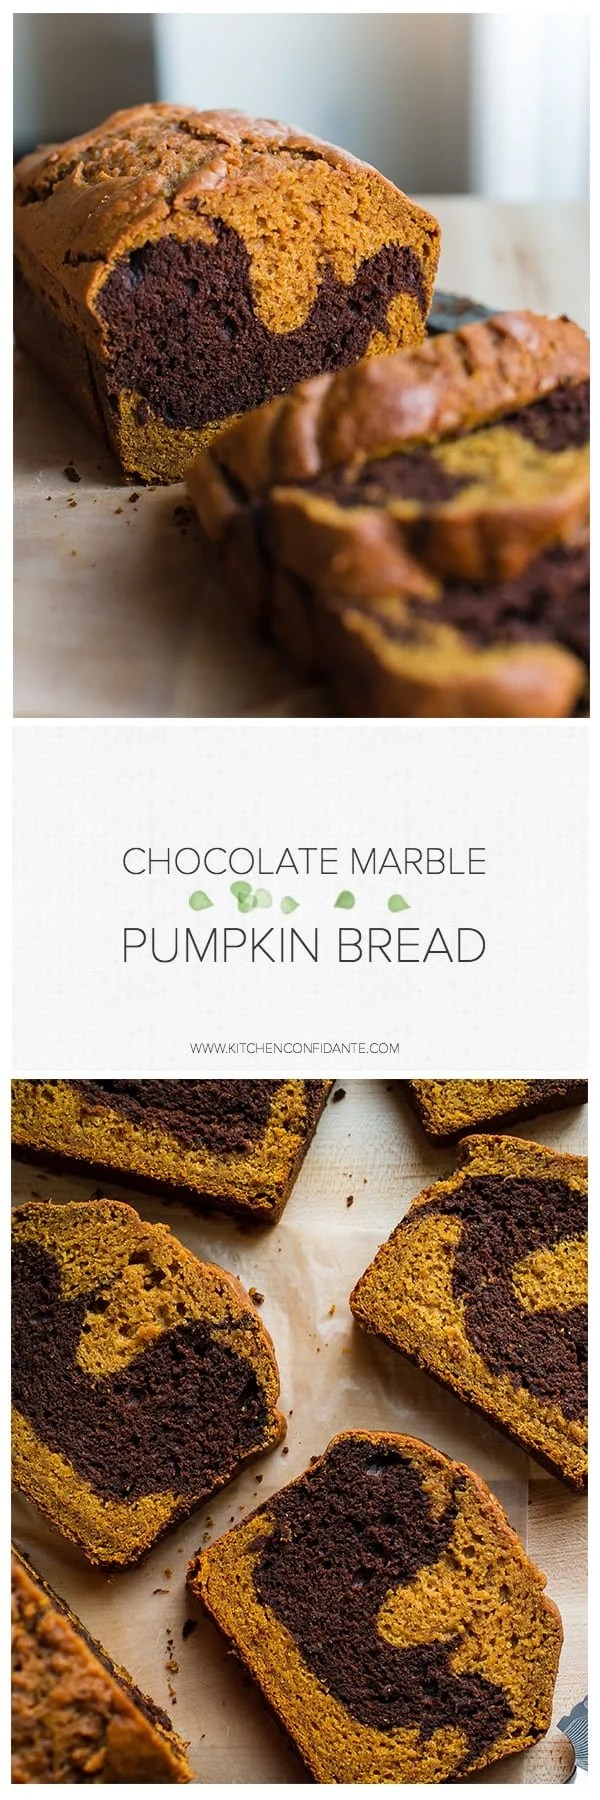 The only thing that can make pumpkin bread better is a swirl of chocolate. Try this simply delicious recipe for Chocolate Marble Pumpkin Bread!